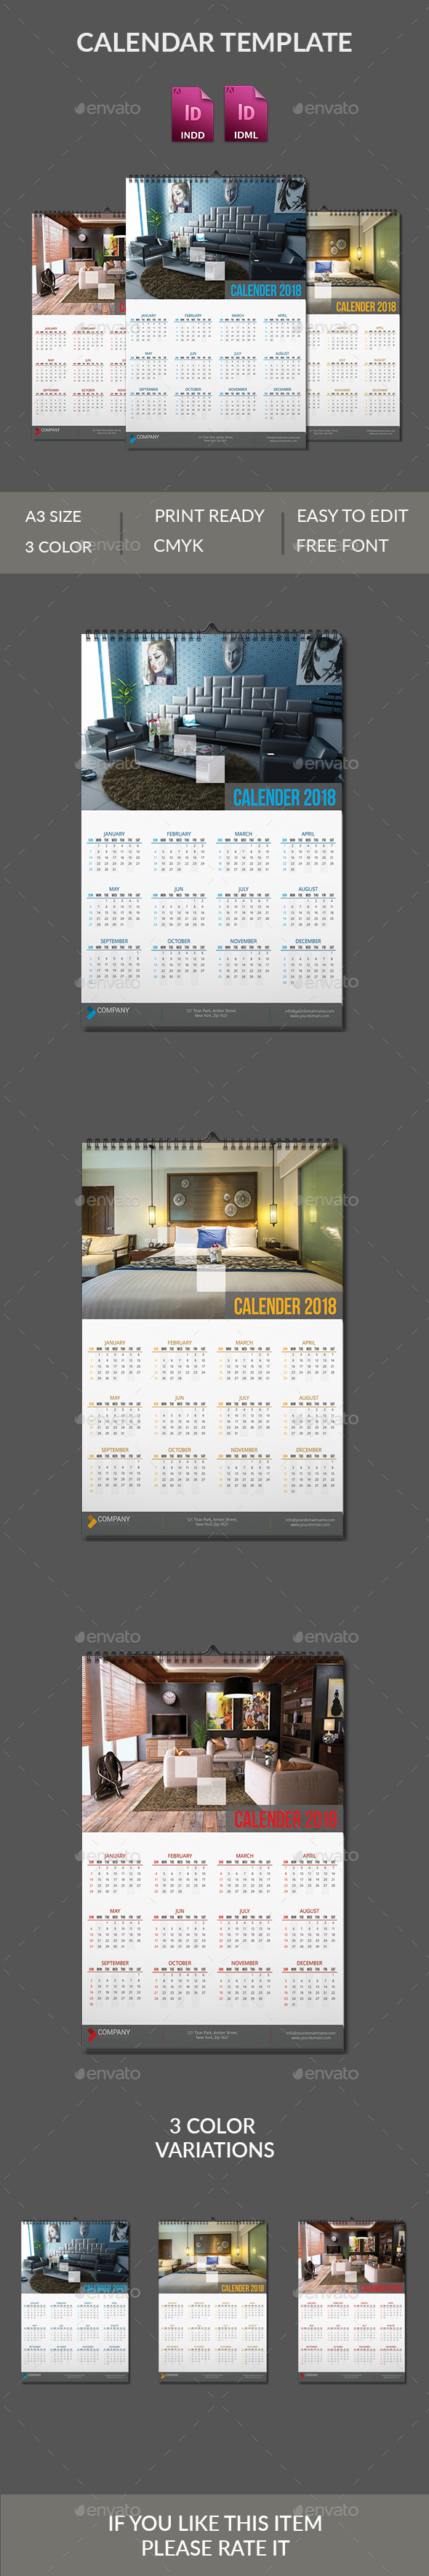 Wall Calendar 2018 - Calendars Stationery